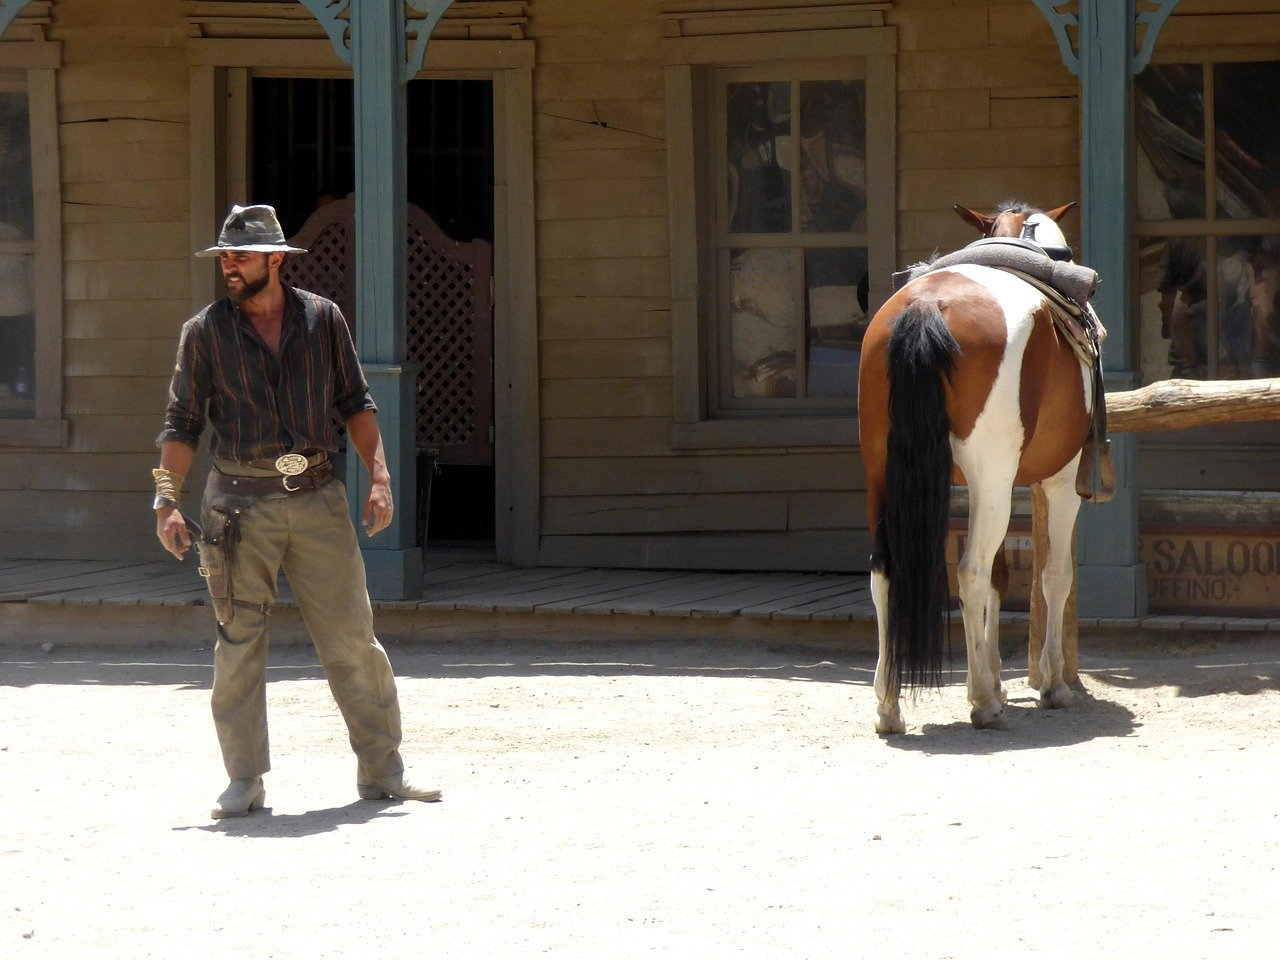 A cowboy looking confused as he looks around with a horse close by   Photo: Pixabay/Pashi